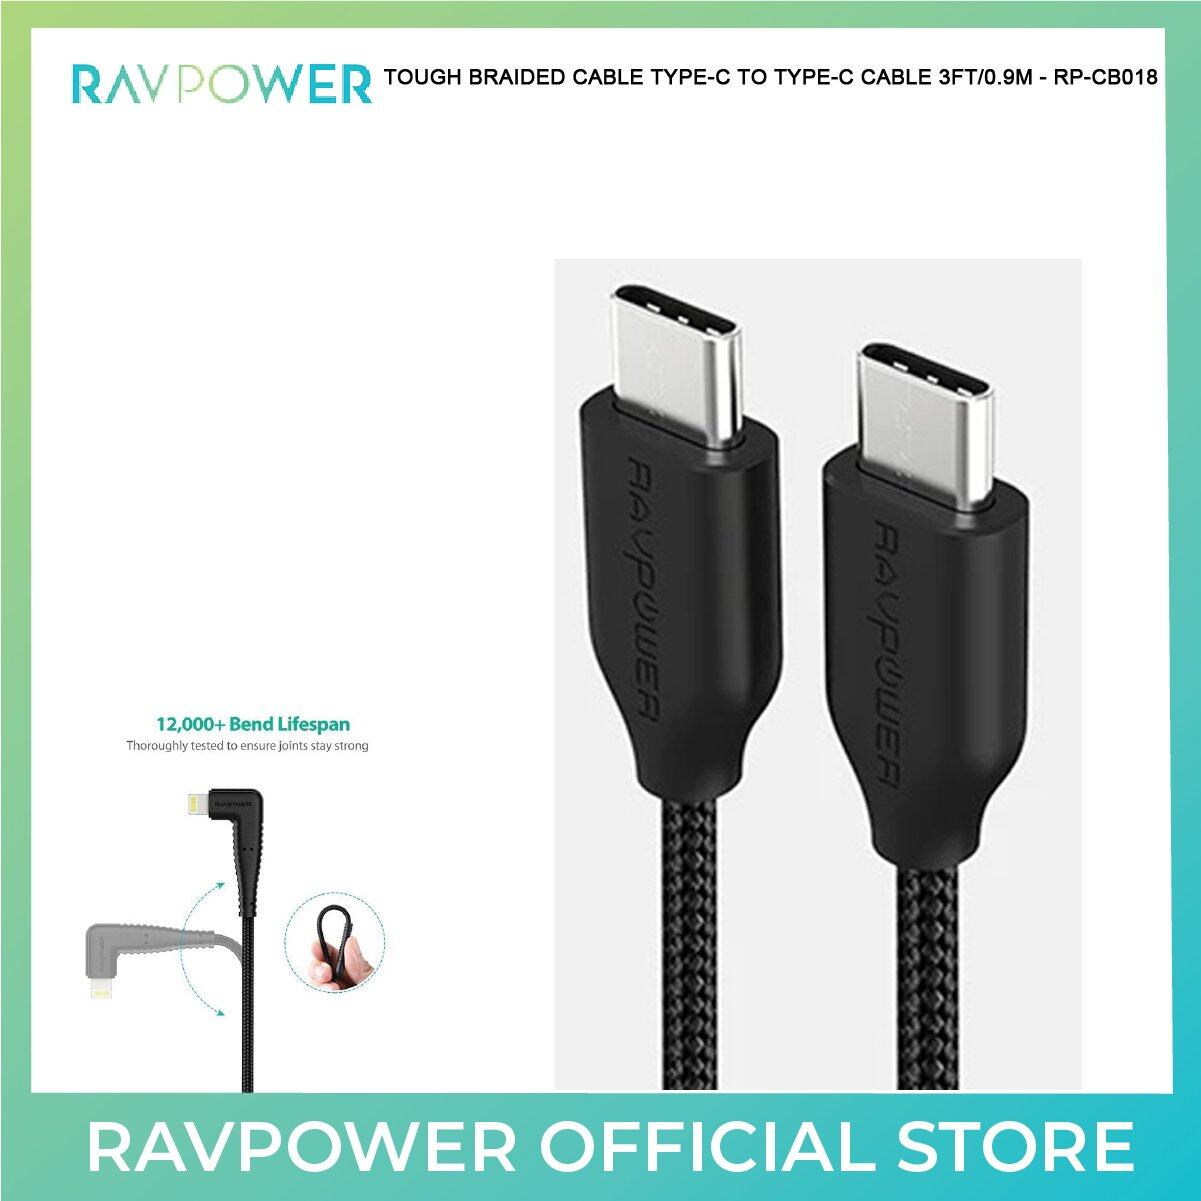 RAVPower Kevlar Braided Cable TYPE-C TO TYPE-C CABLE -RP-CB047